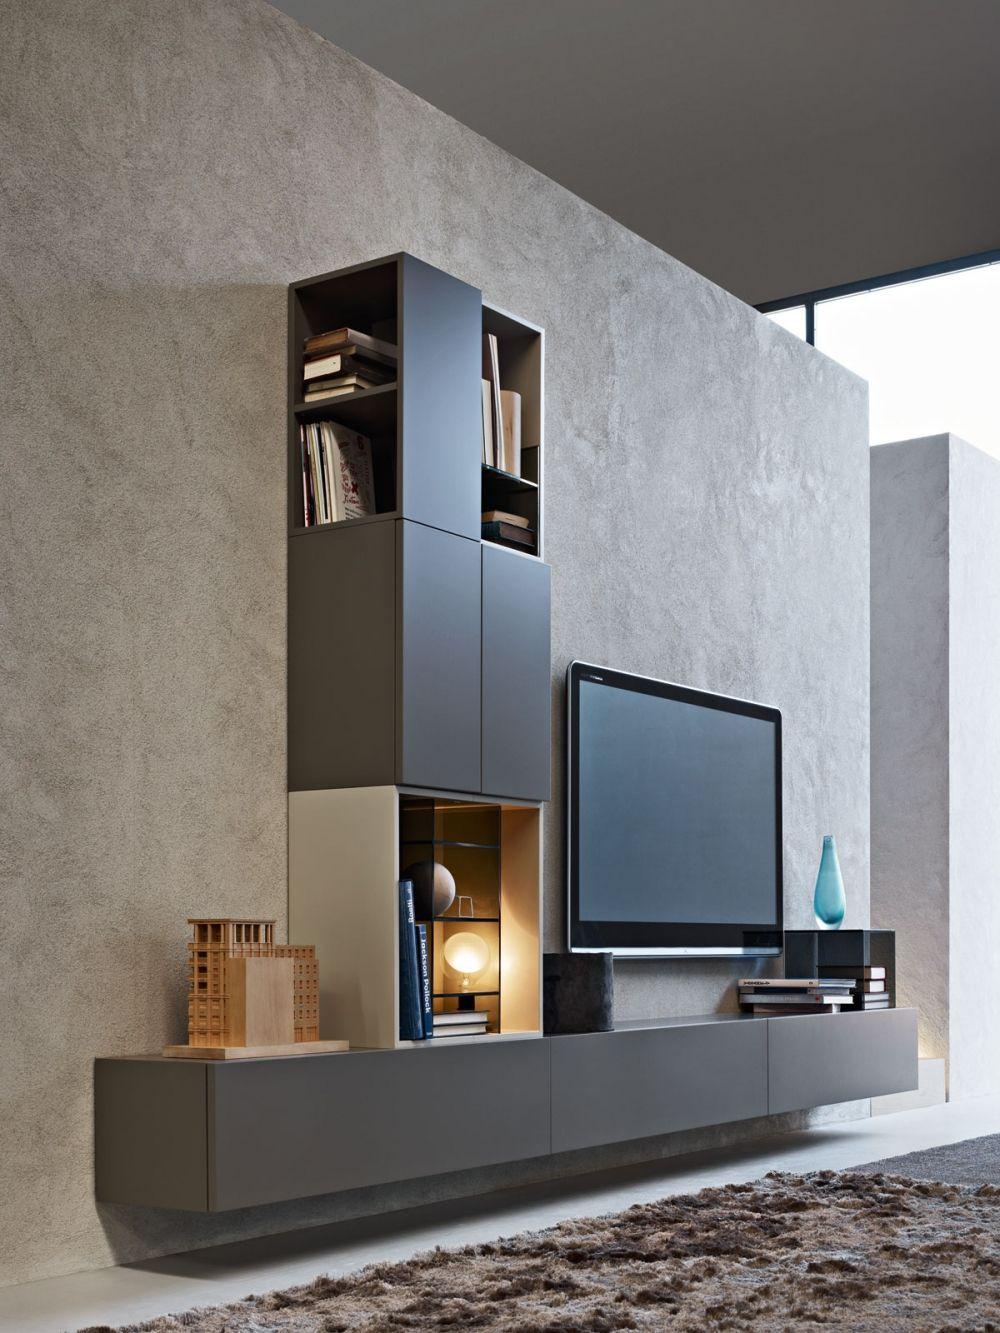 A System Based On Only Three Fundamental Elements That Can Be  # Muebles Voila Murcia